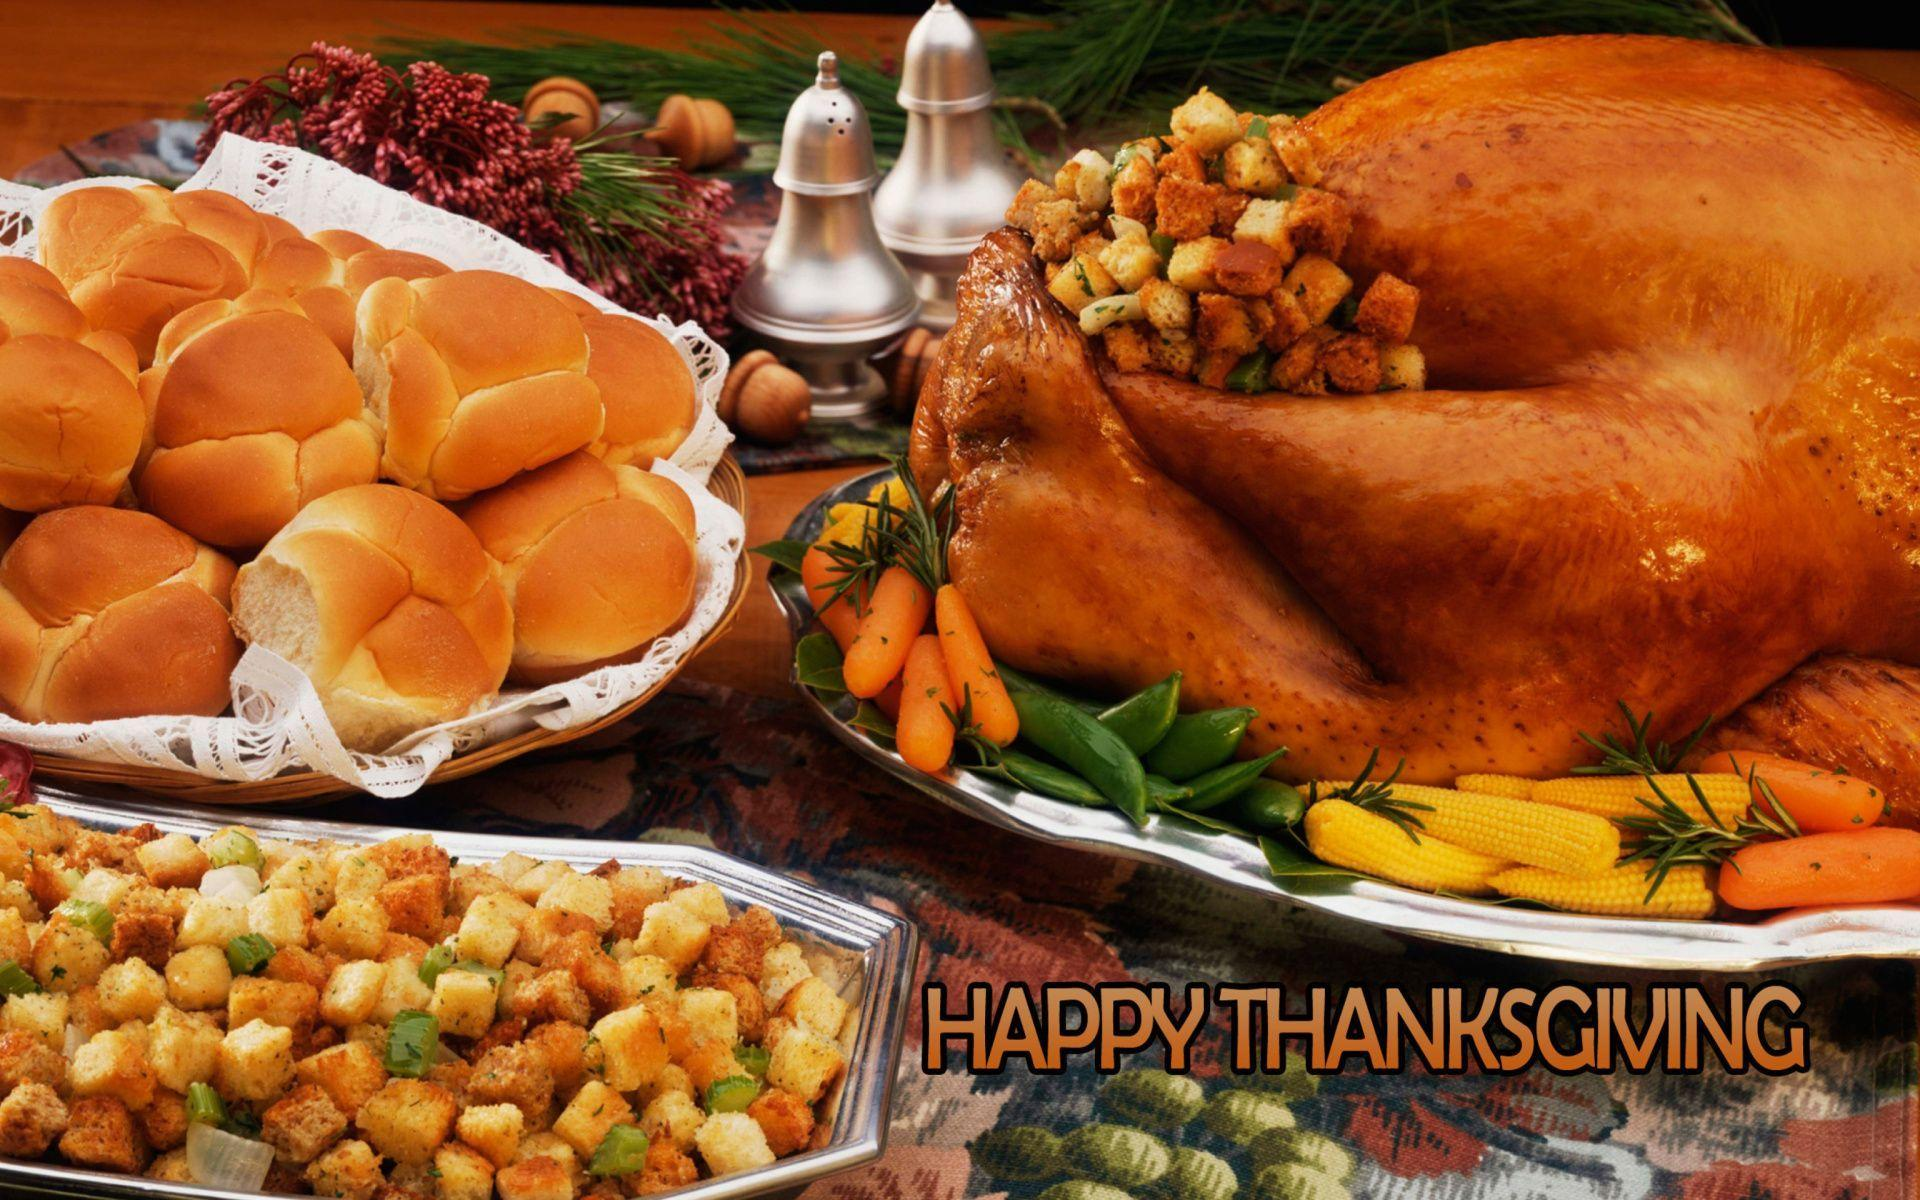 Thanksgiving Dinner Wallpaper - Shared by Sung | Szzljy